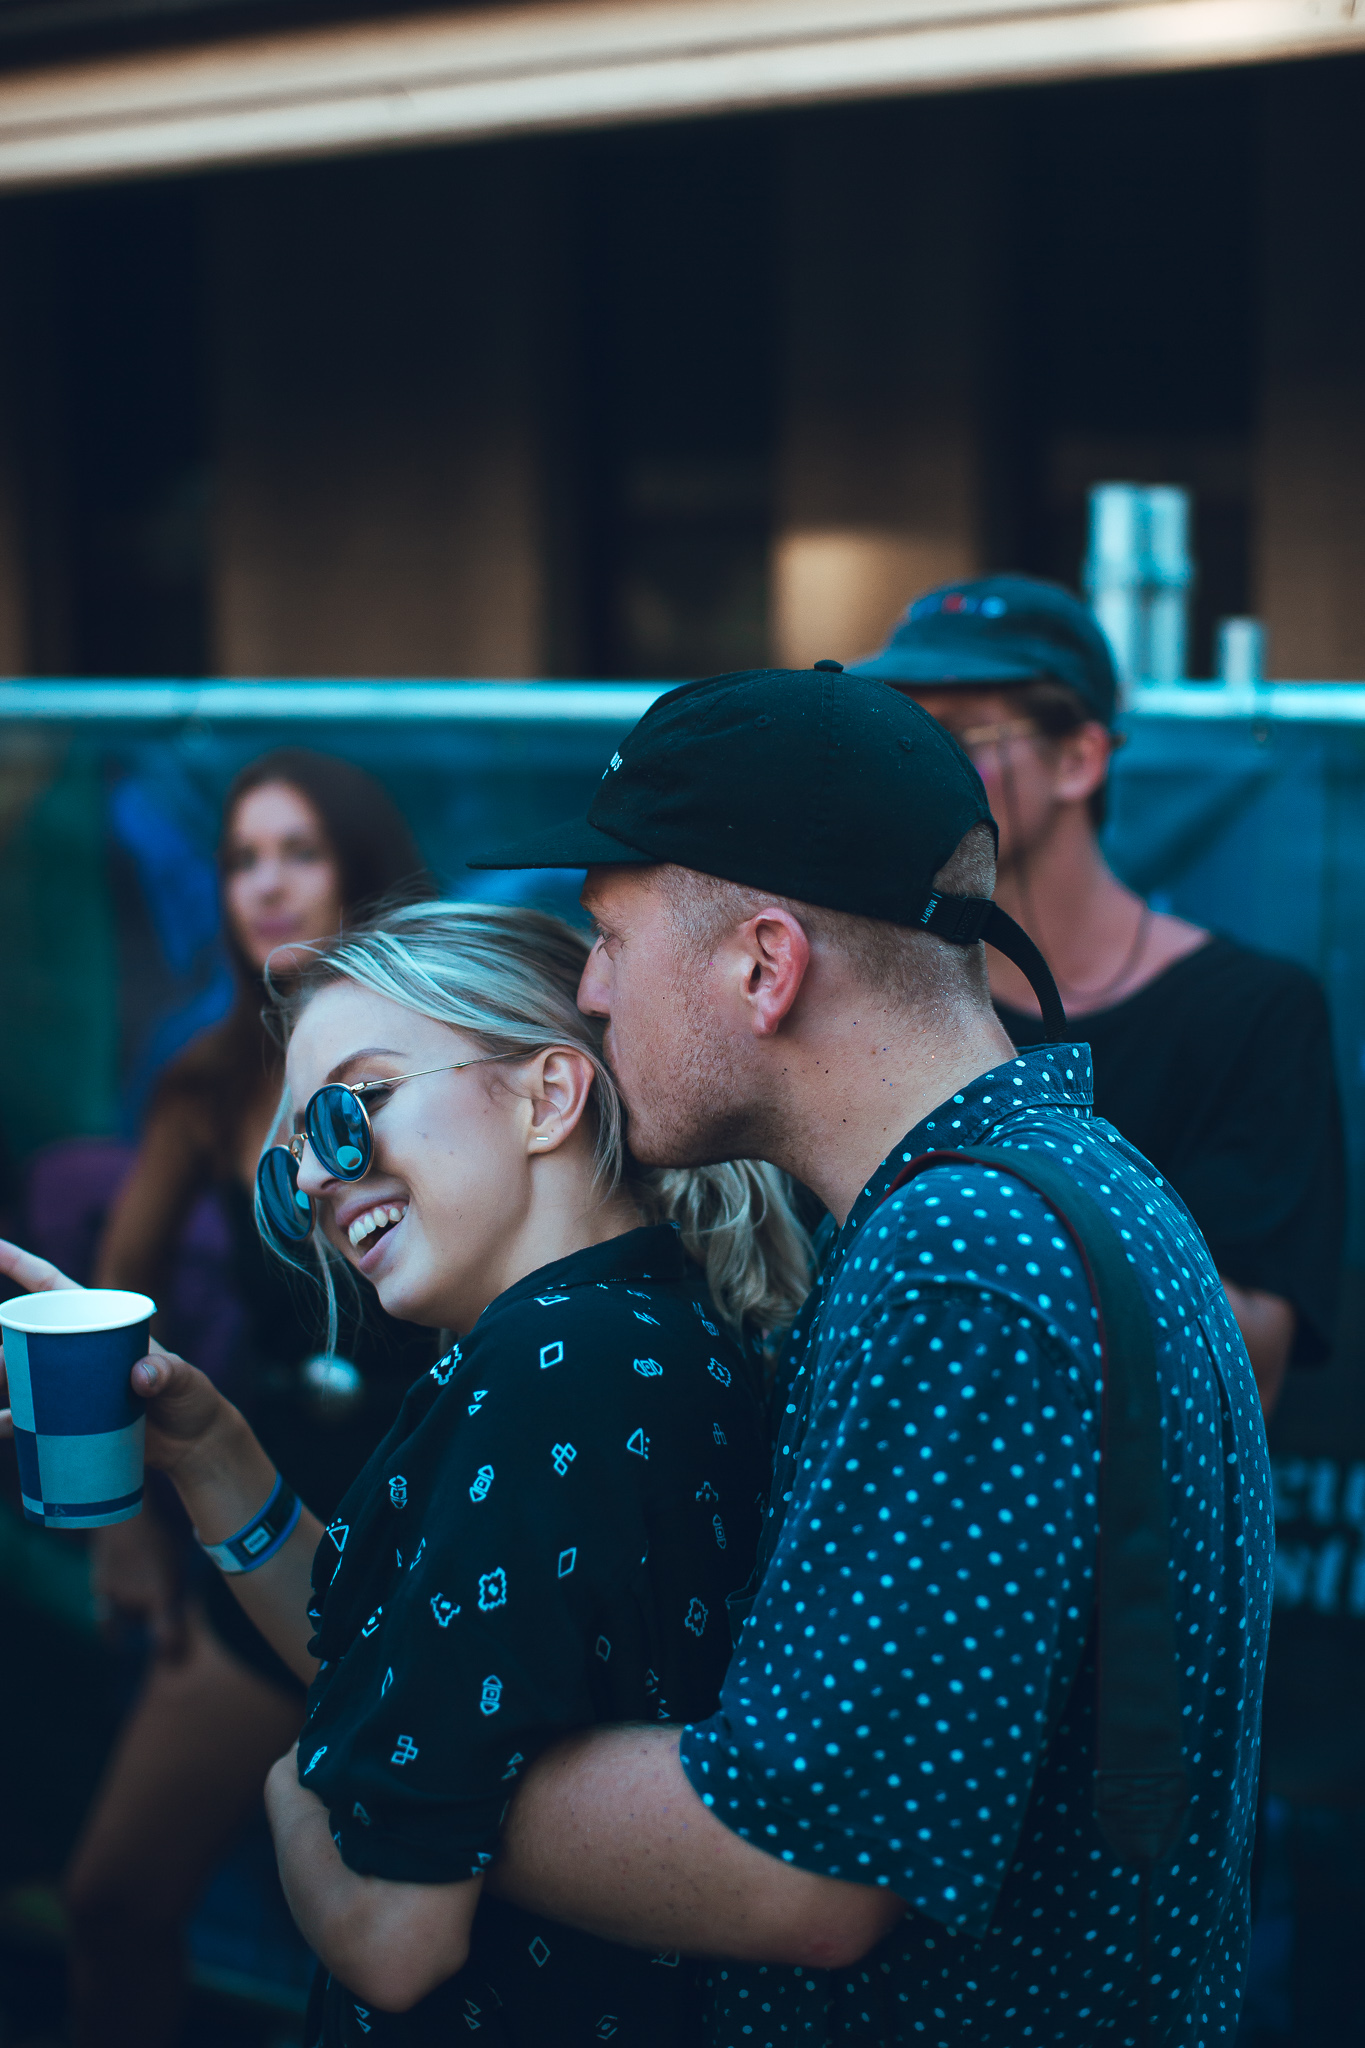 laneway_photo-by-oliver-minnett-00622